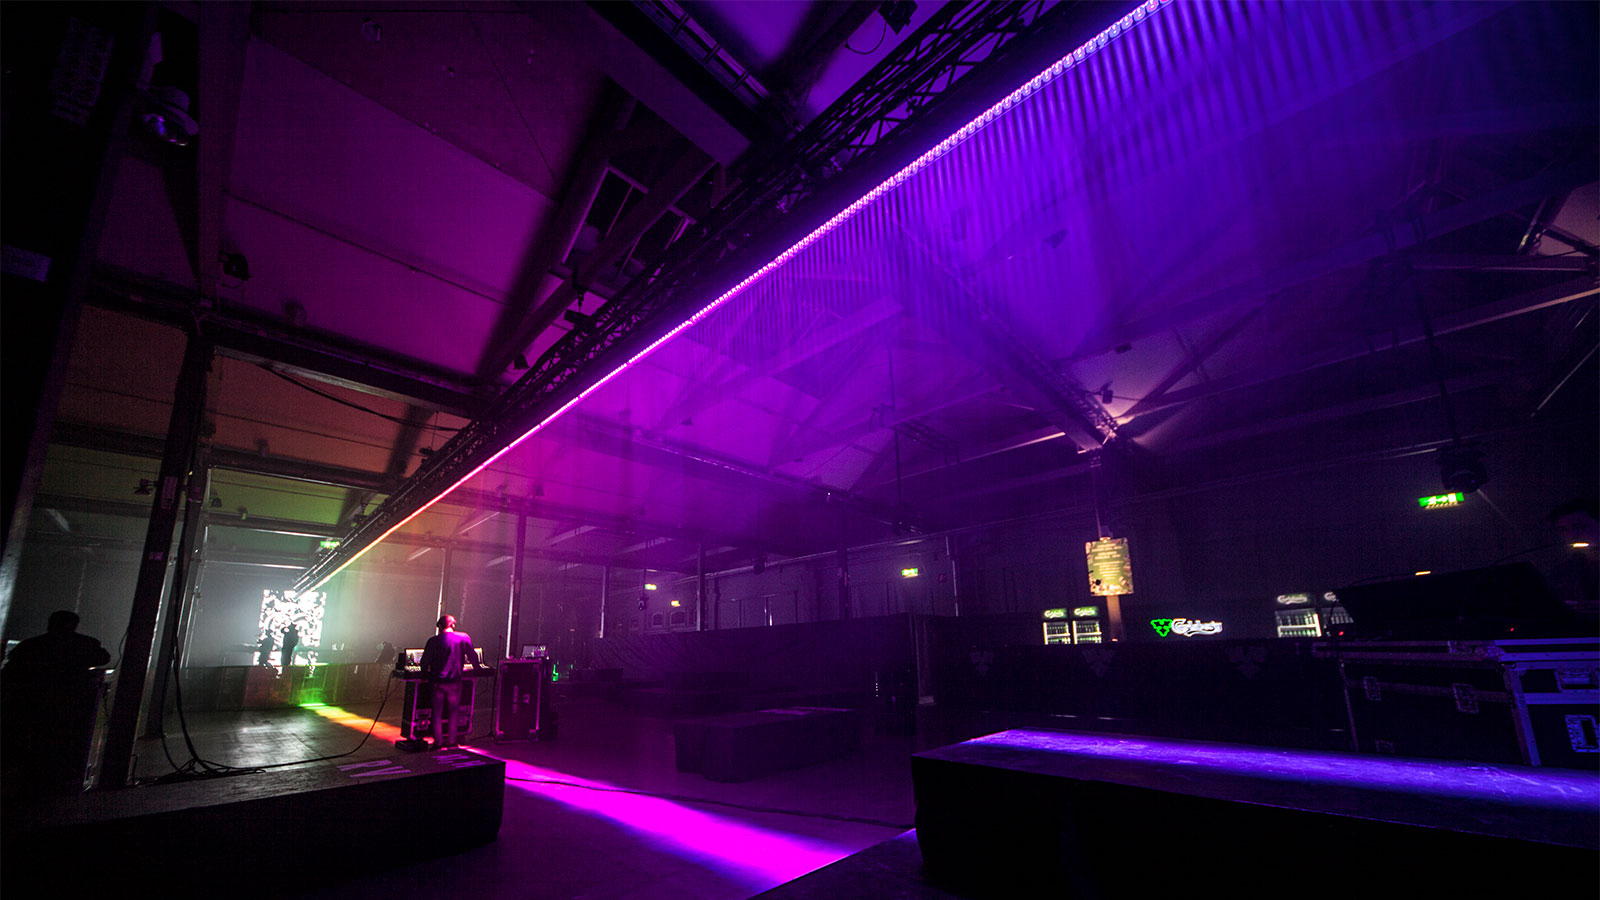 Anders Heberling digs deep into the LED portfolio for largest party ever